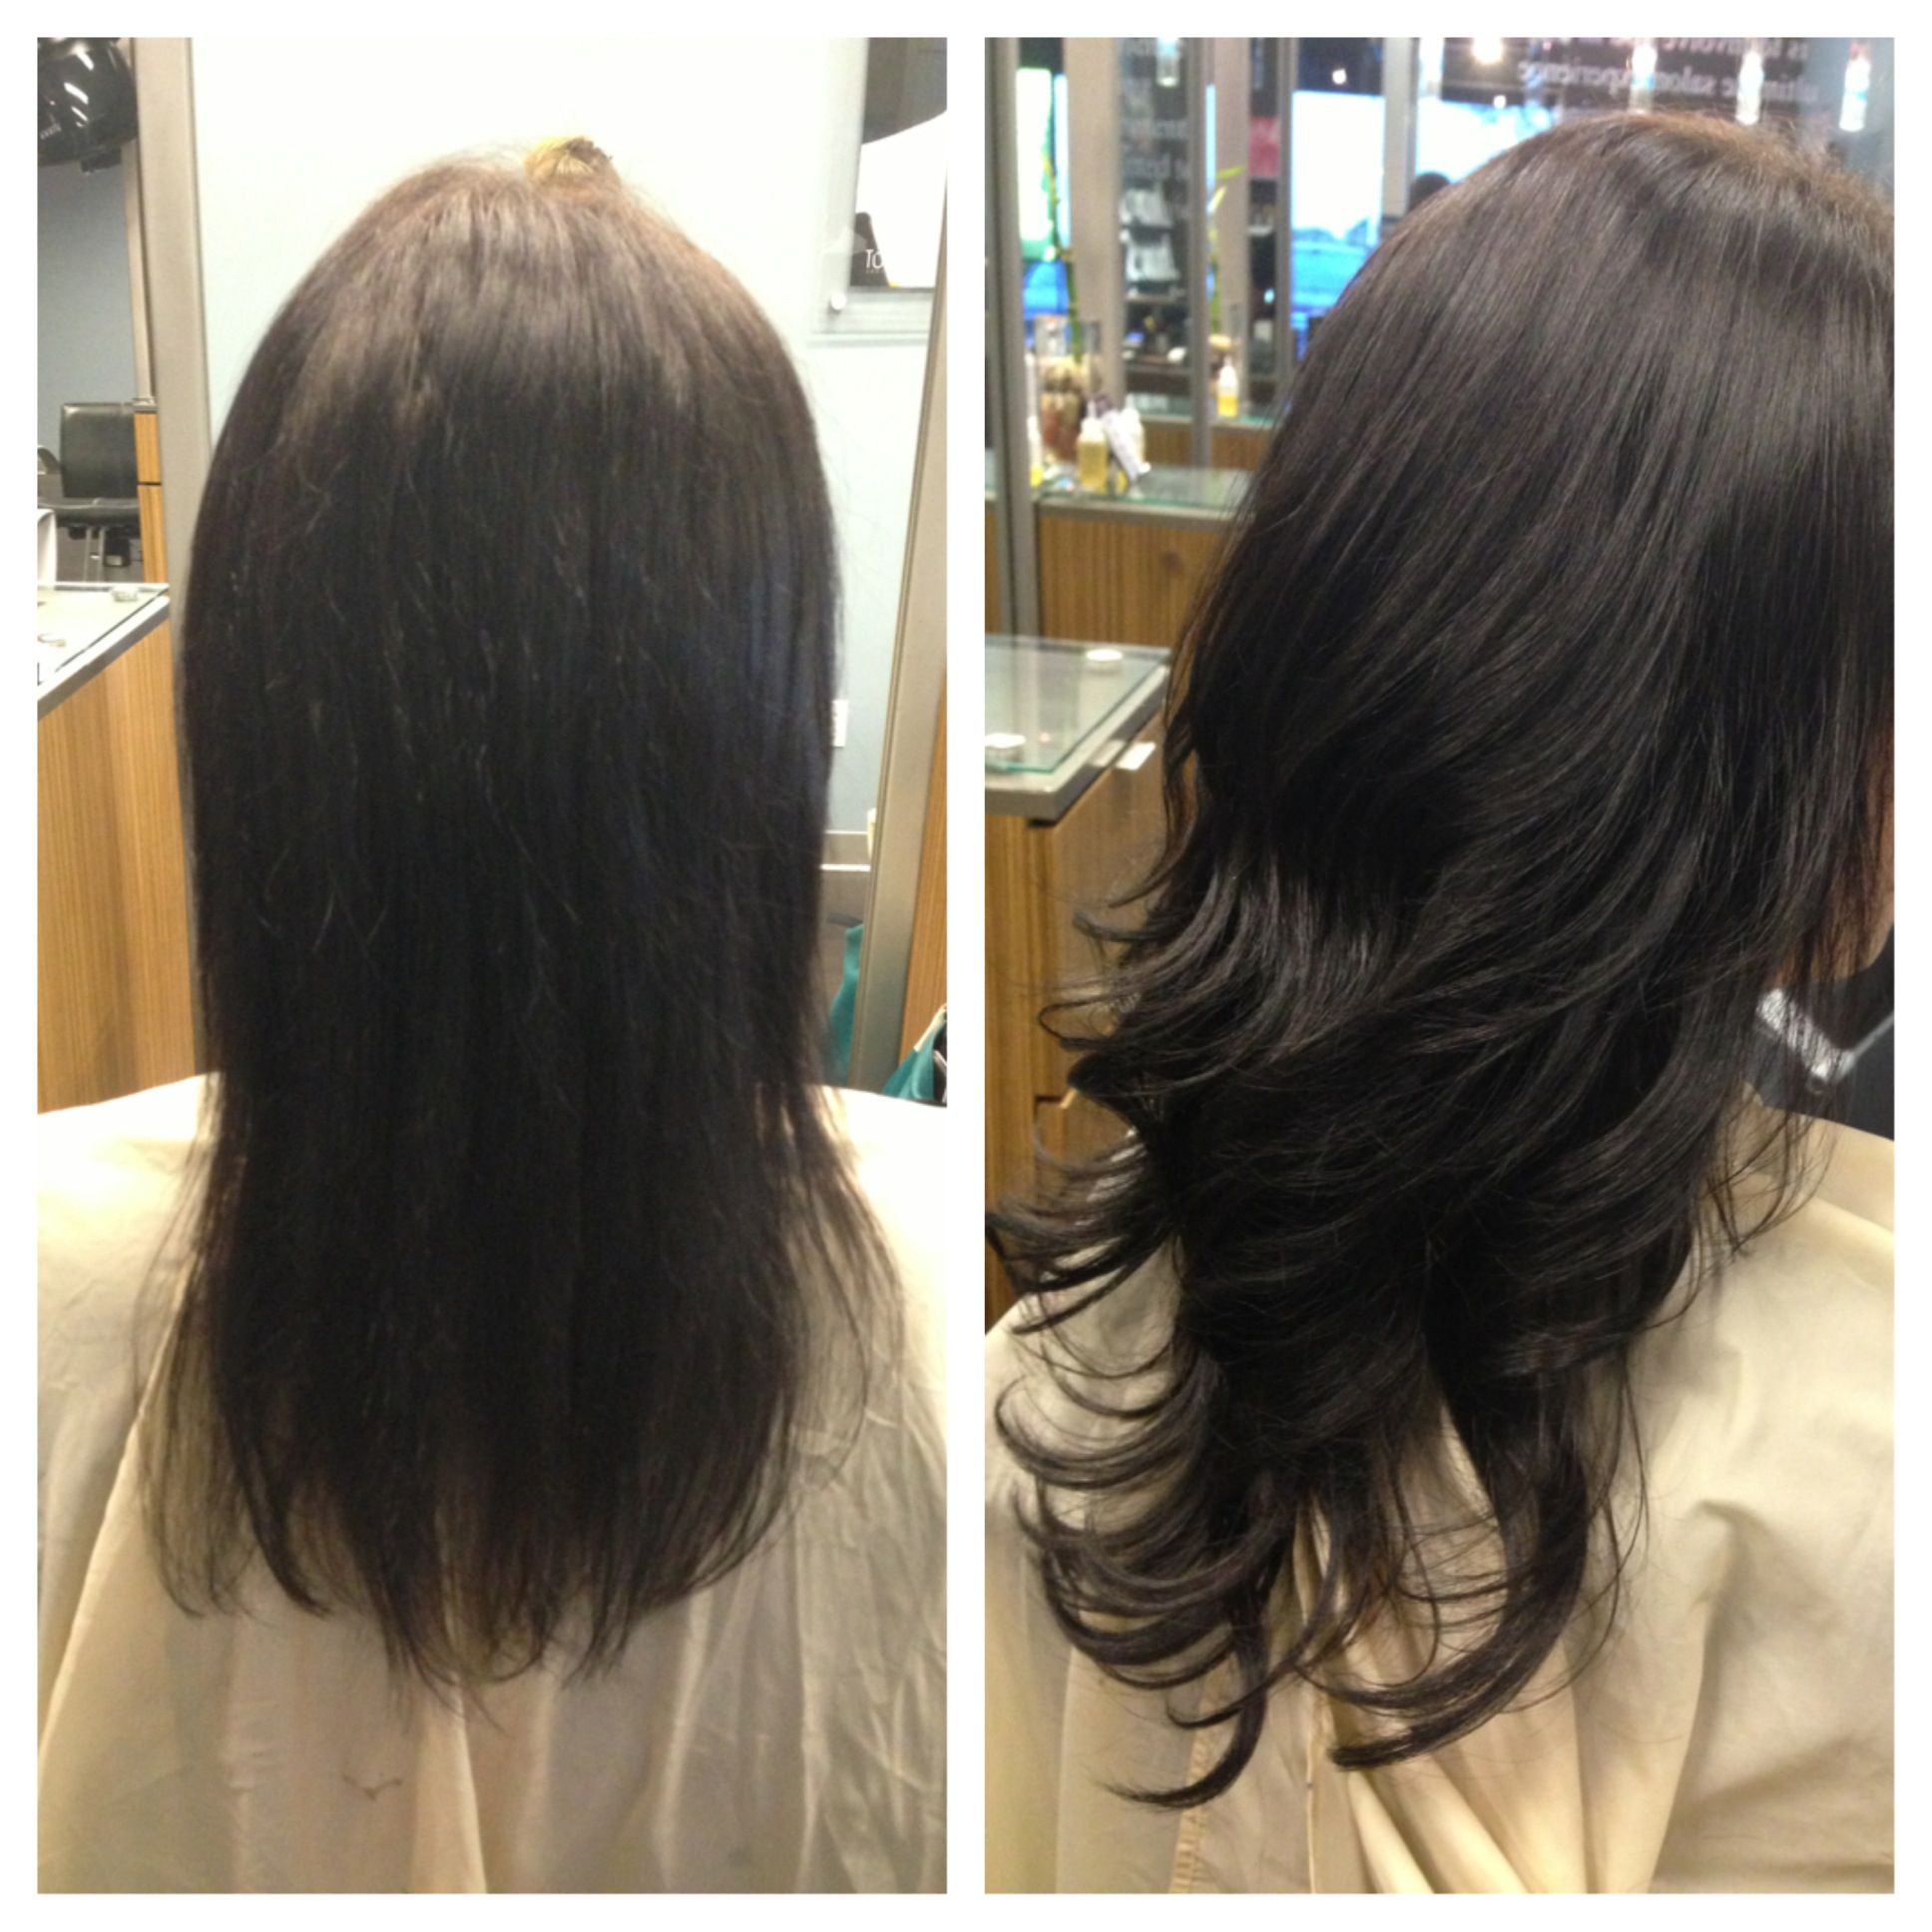 Vomor Hair Extensions Before And After Ididthat Hair Makeup